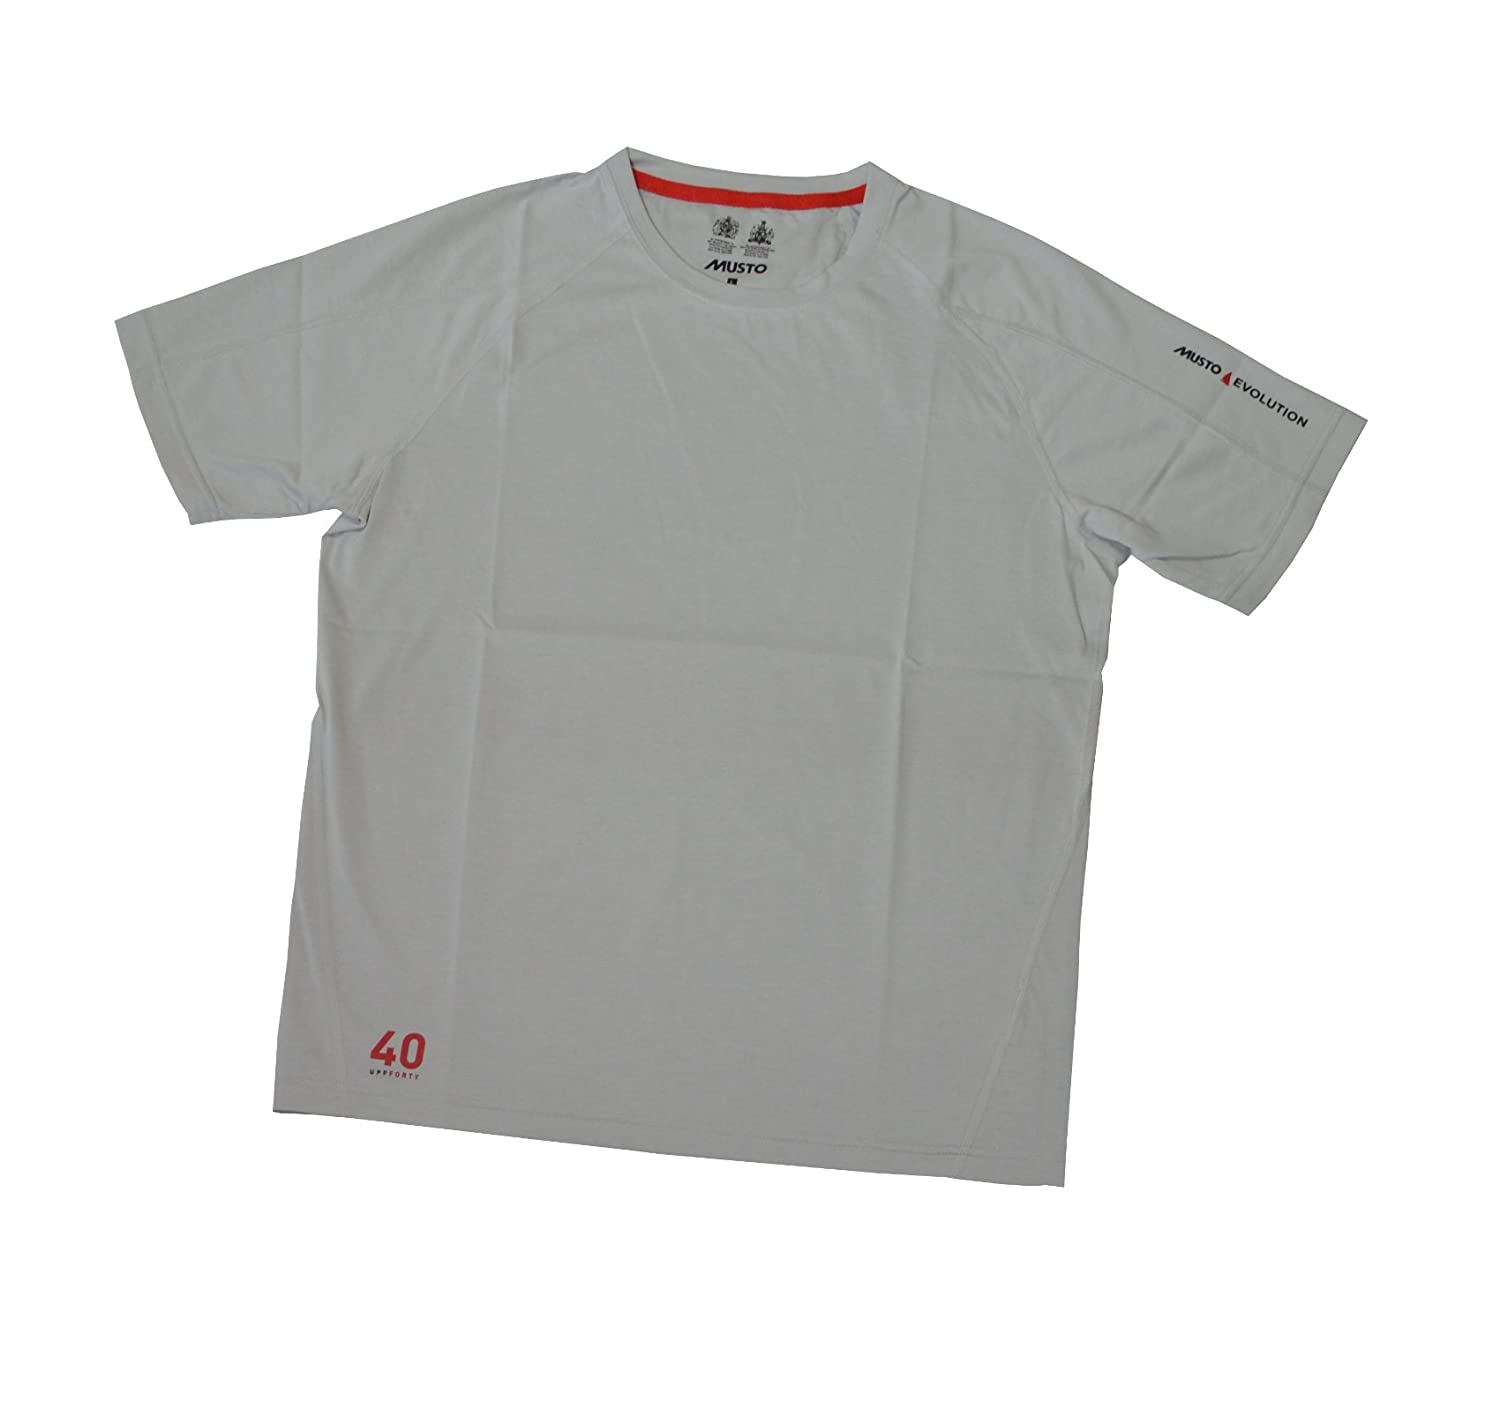 Musto Evolution Sunblock Short Sleeve T-Shirt - Platinum M